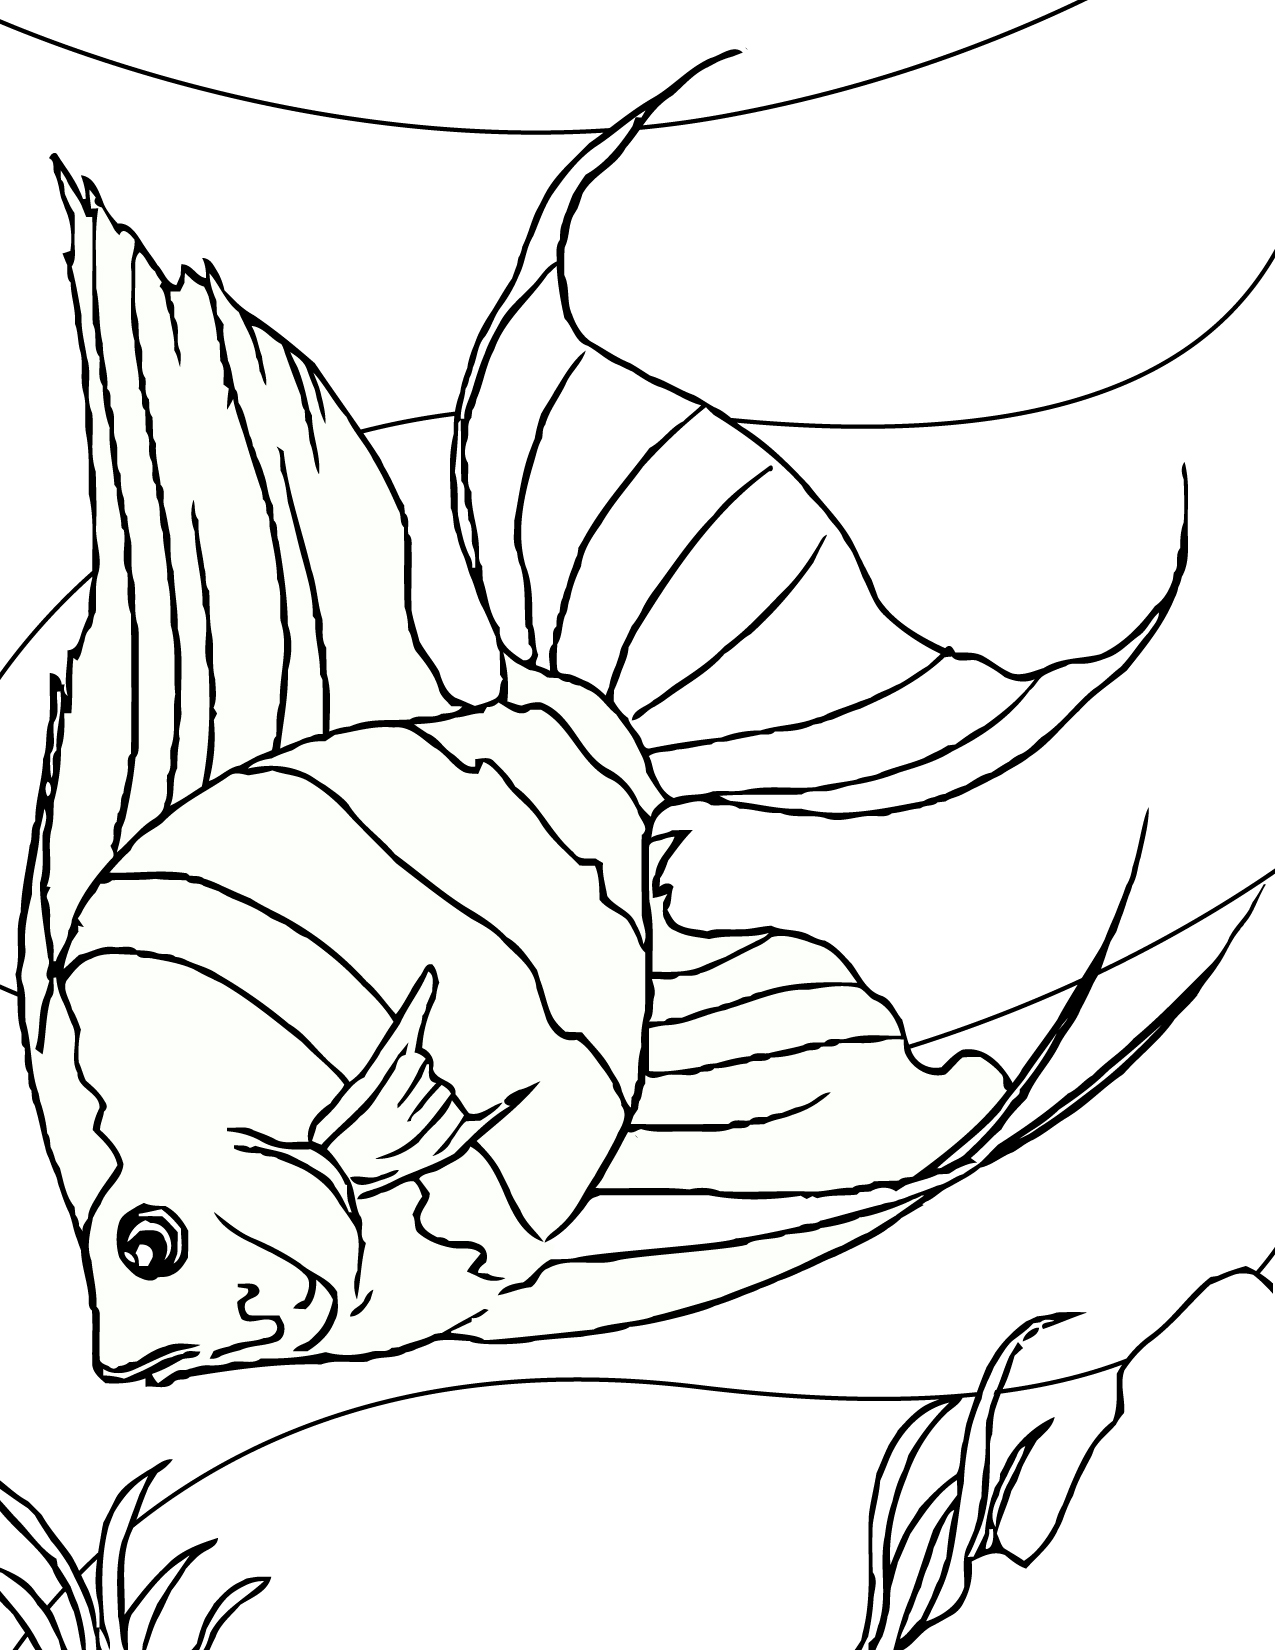 Line Drawing Of Fish : Fish drawings images cliparts